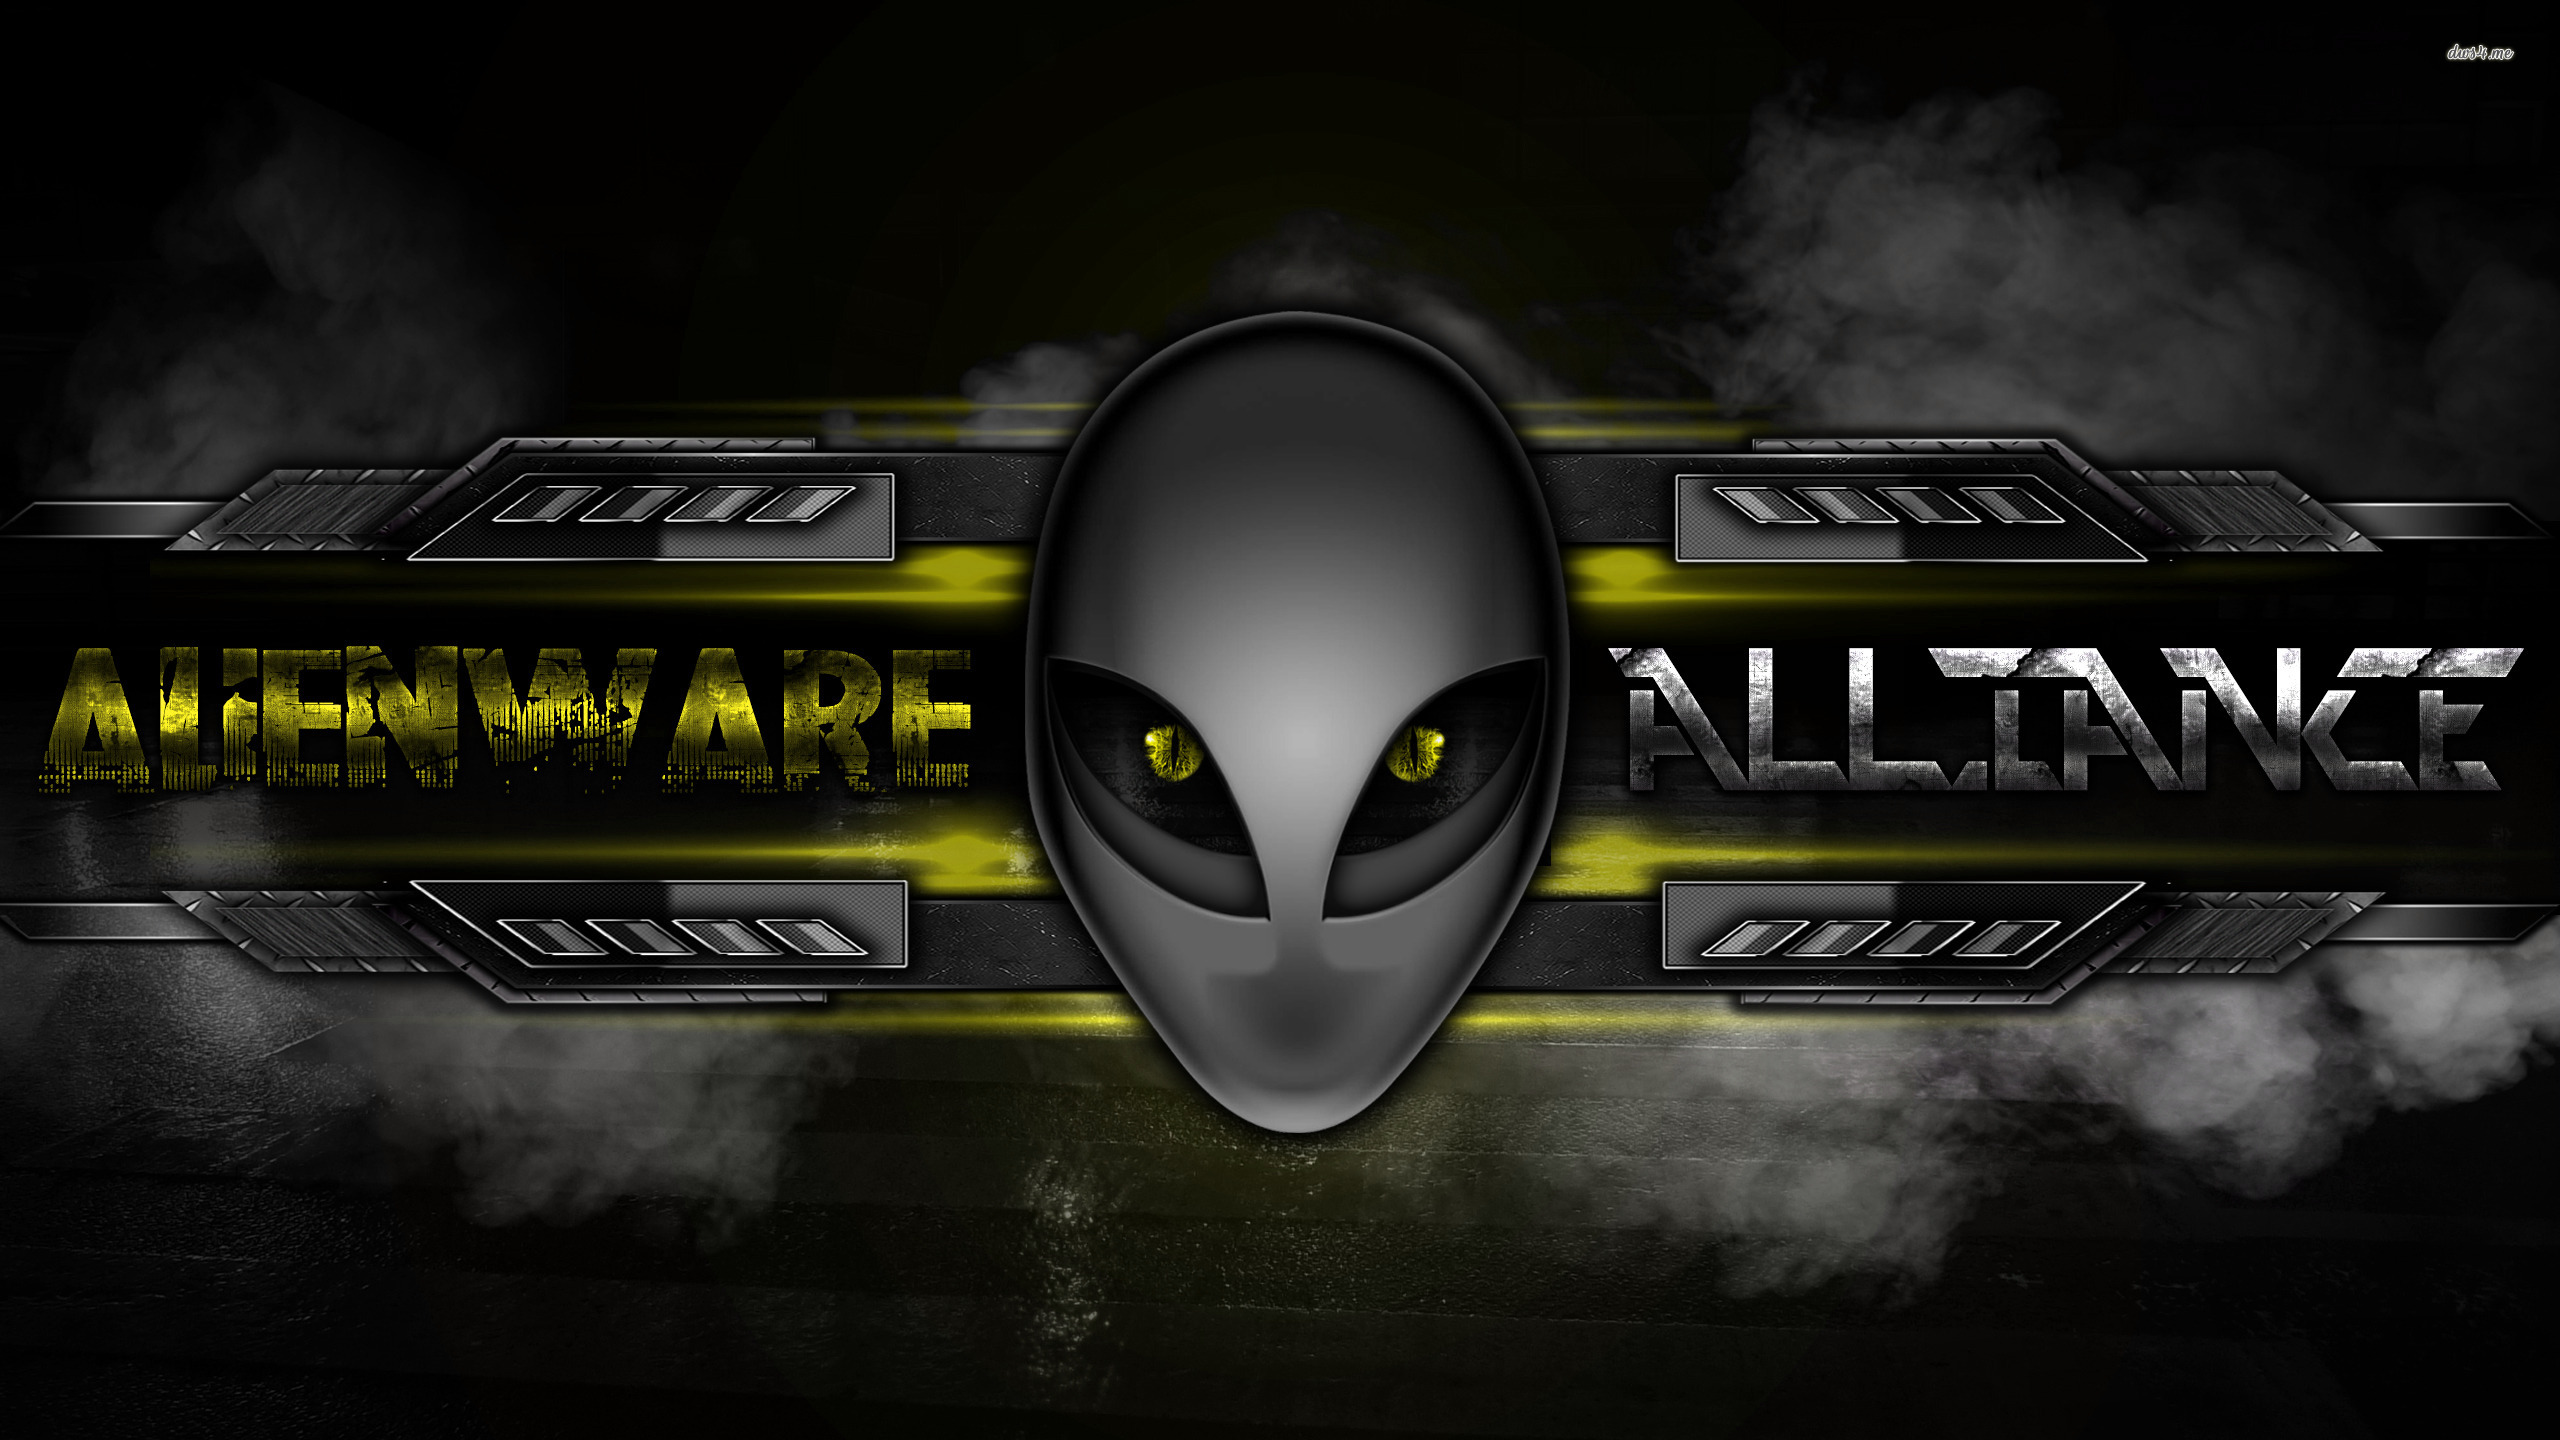 Alienware wallpapers for windows 7 wallpapersafari - Alienware Wallpaper Computer Wallpapers 27645